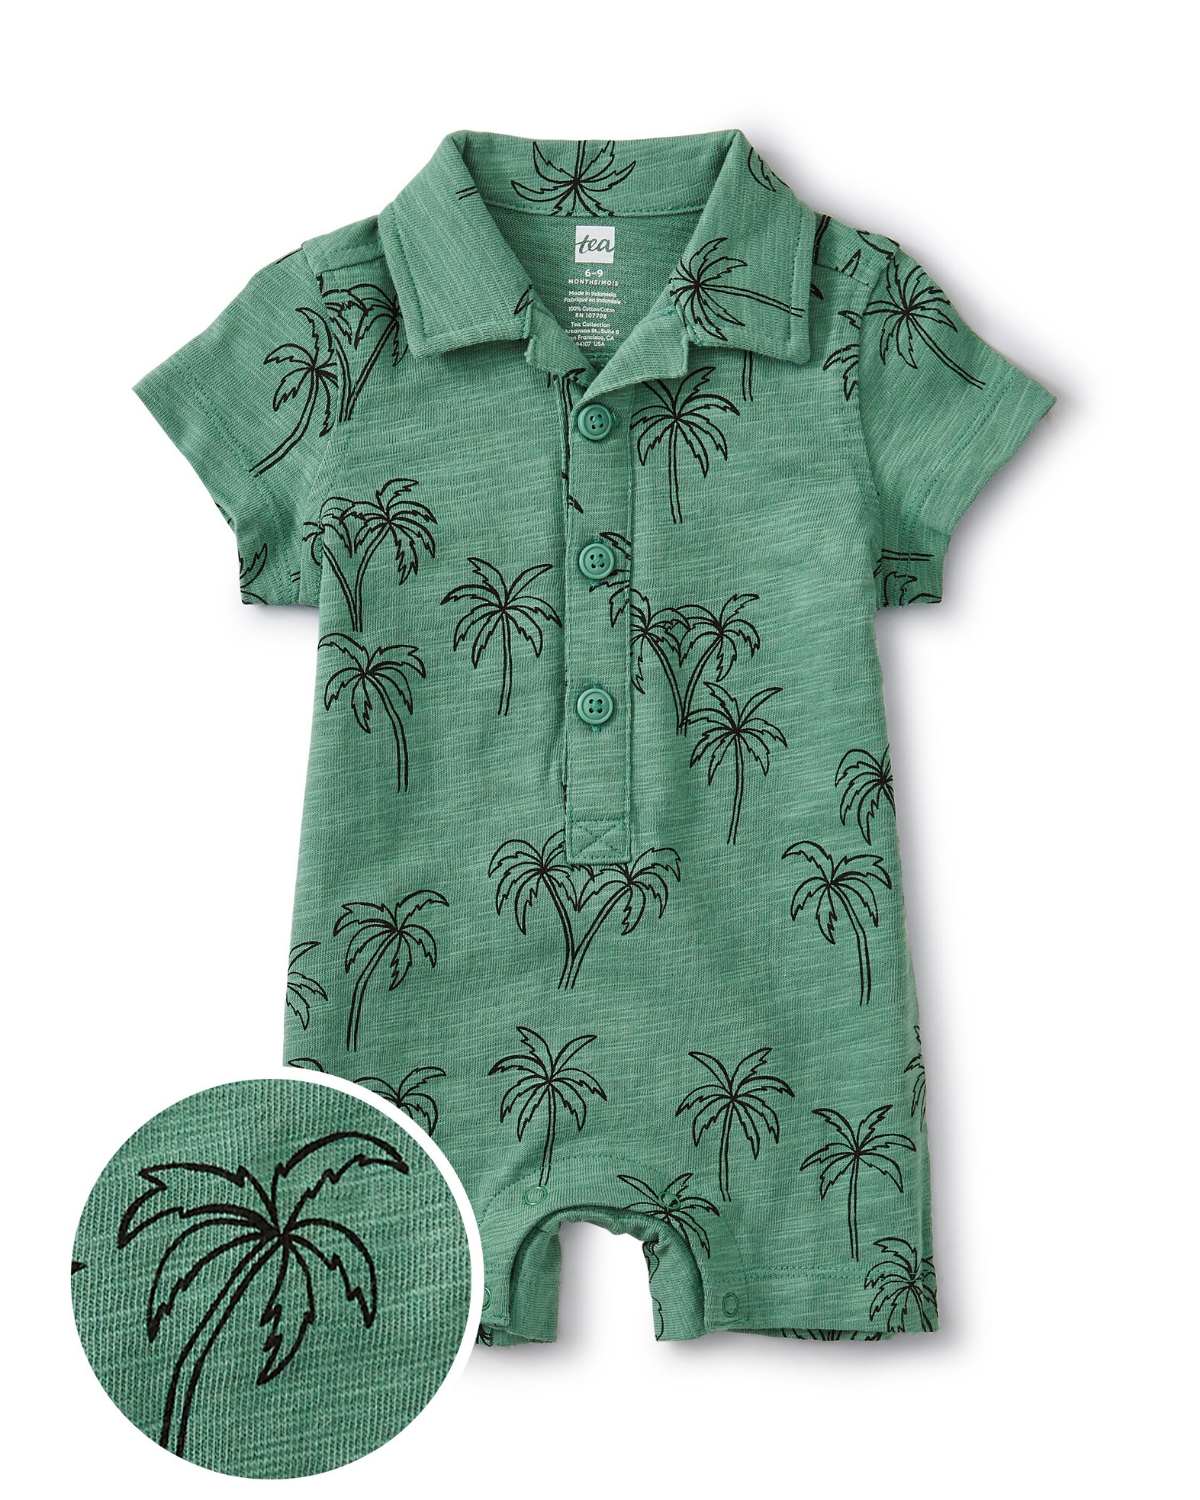 Little tea collection baby camp collar romper in palm trees